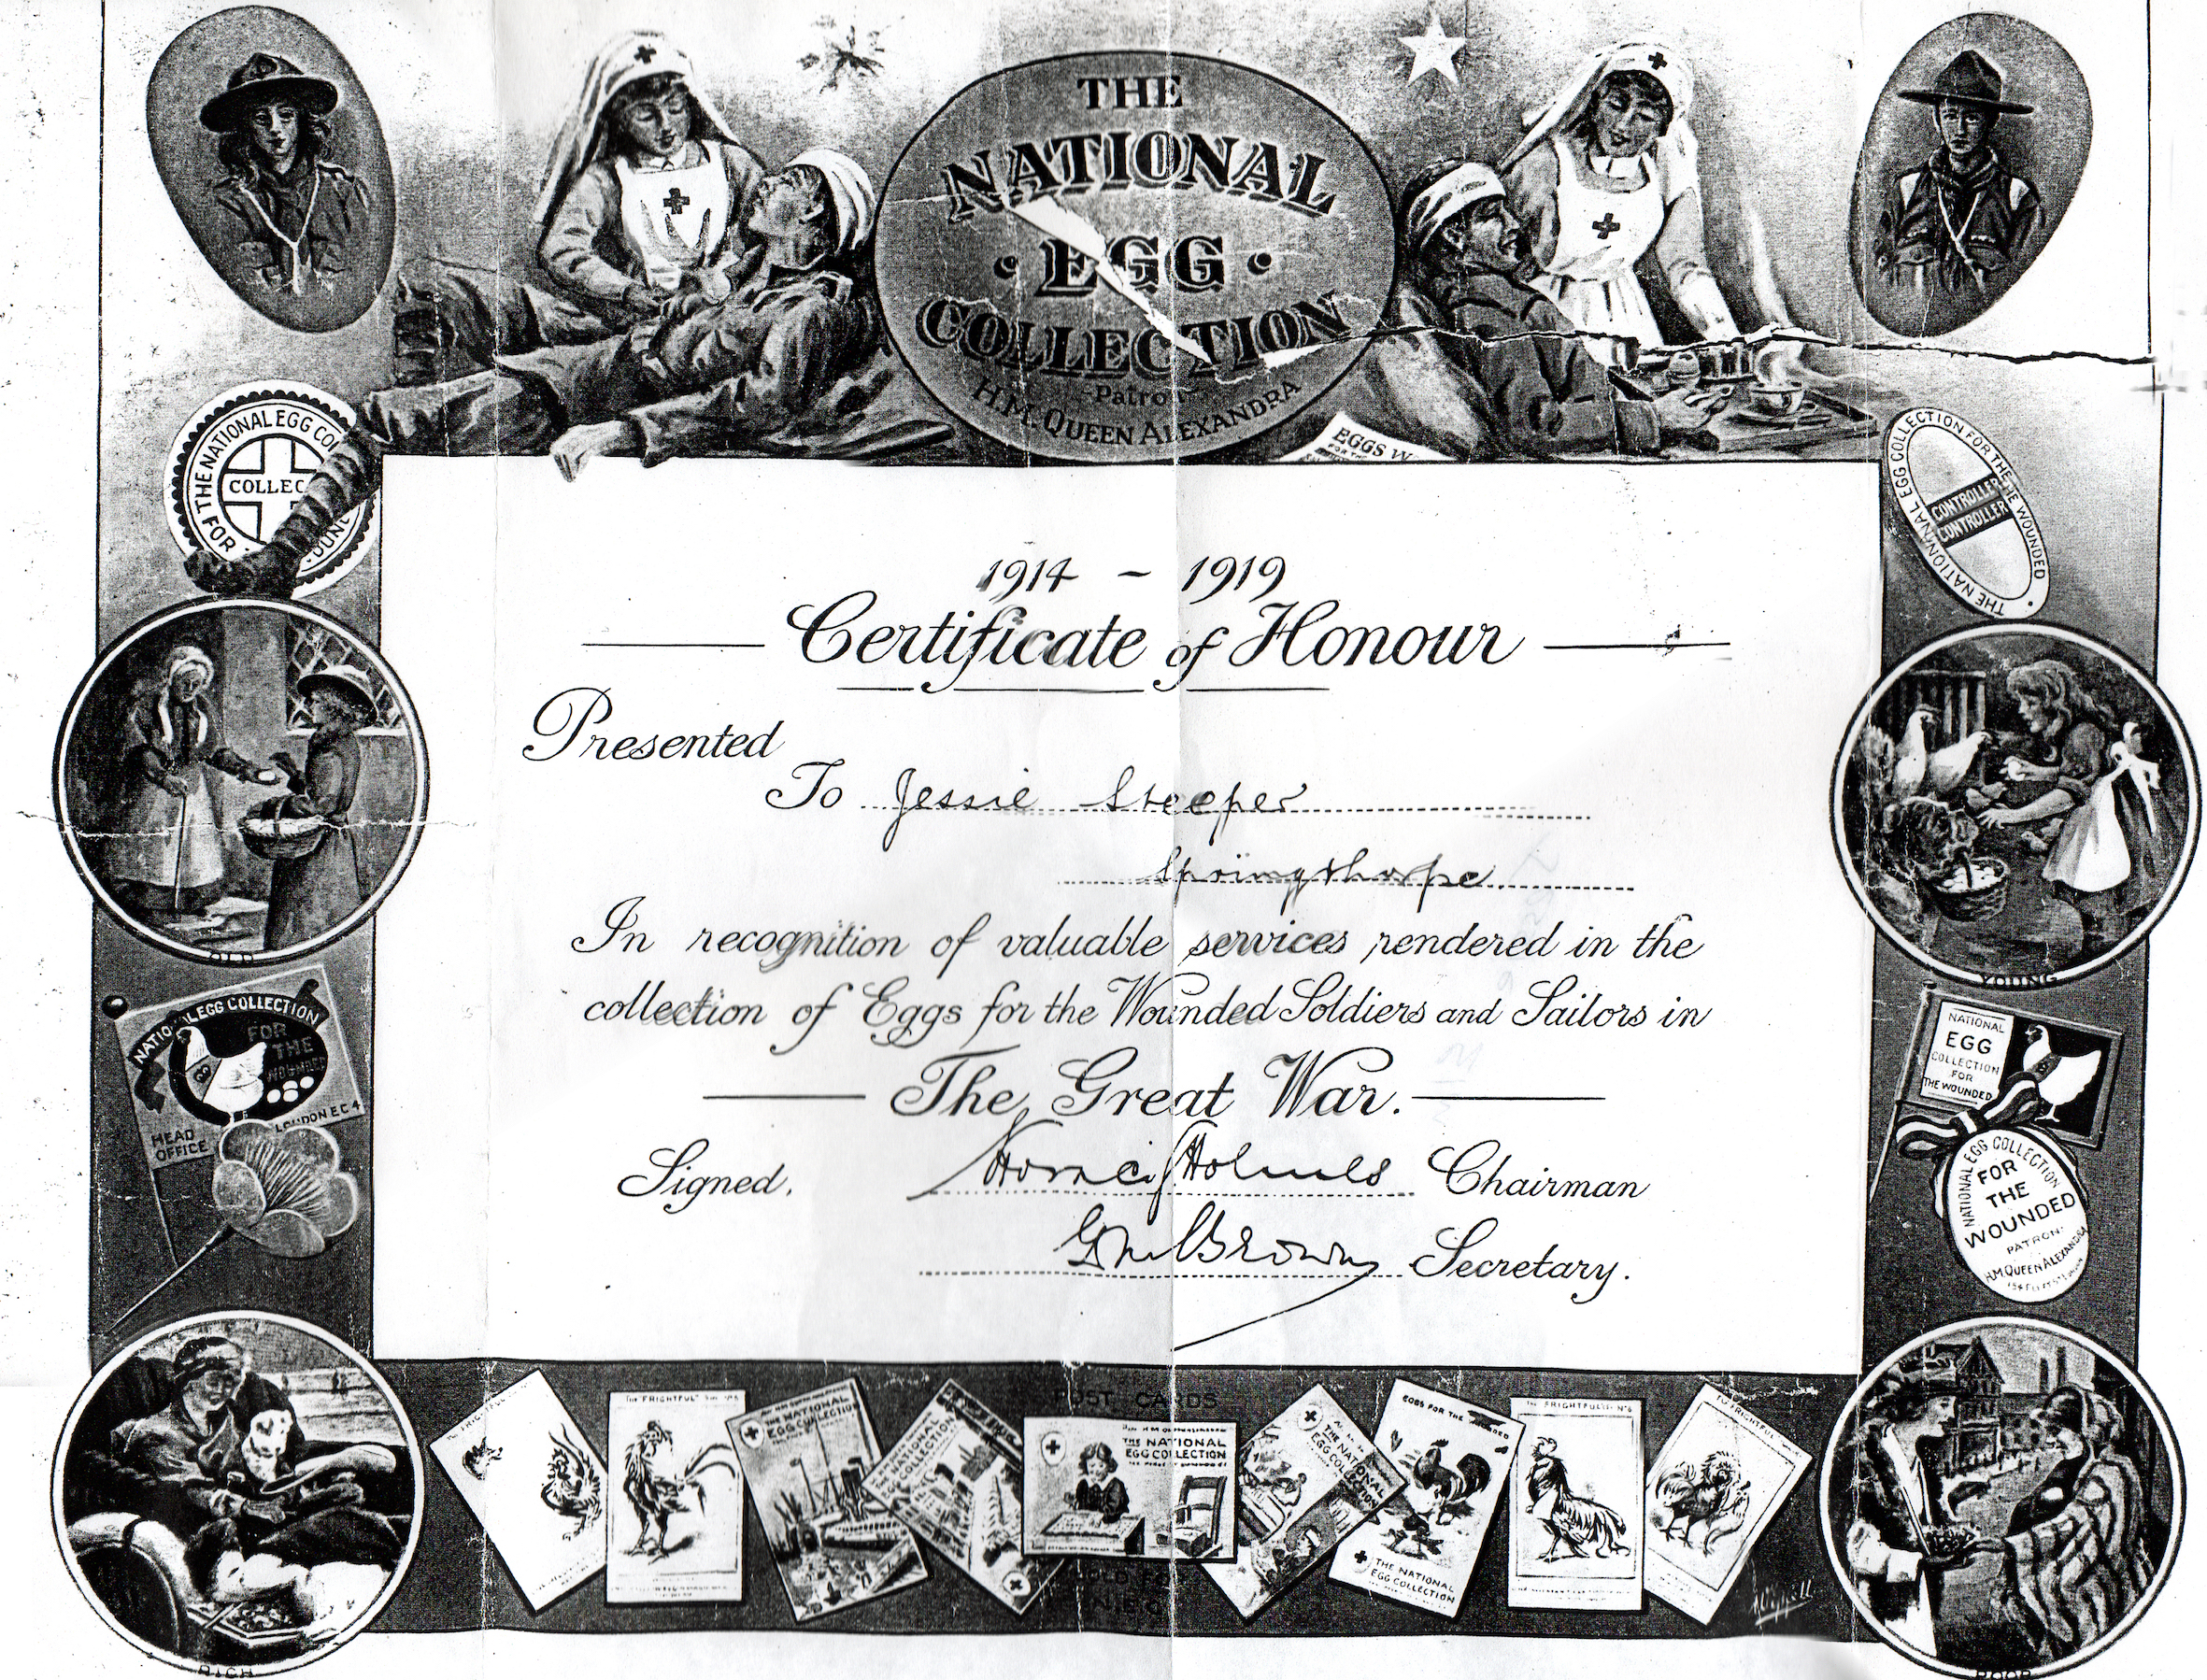 1919 Cert of Honour Steeper.jpeg